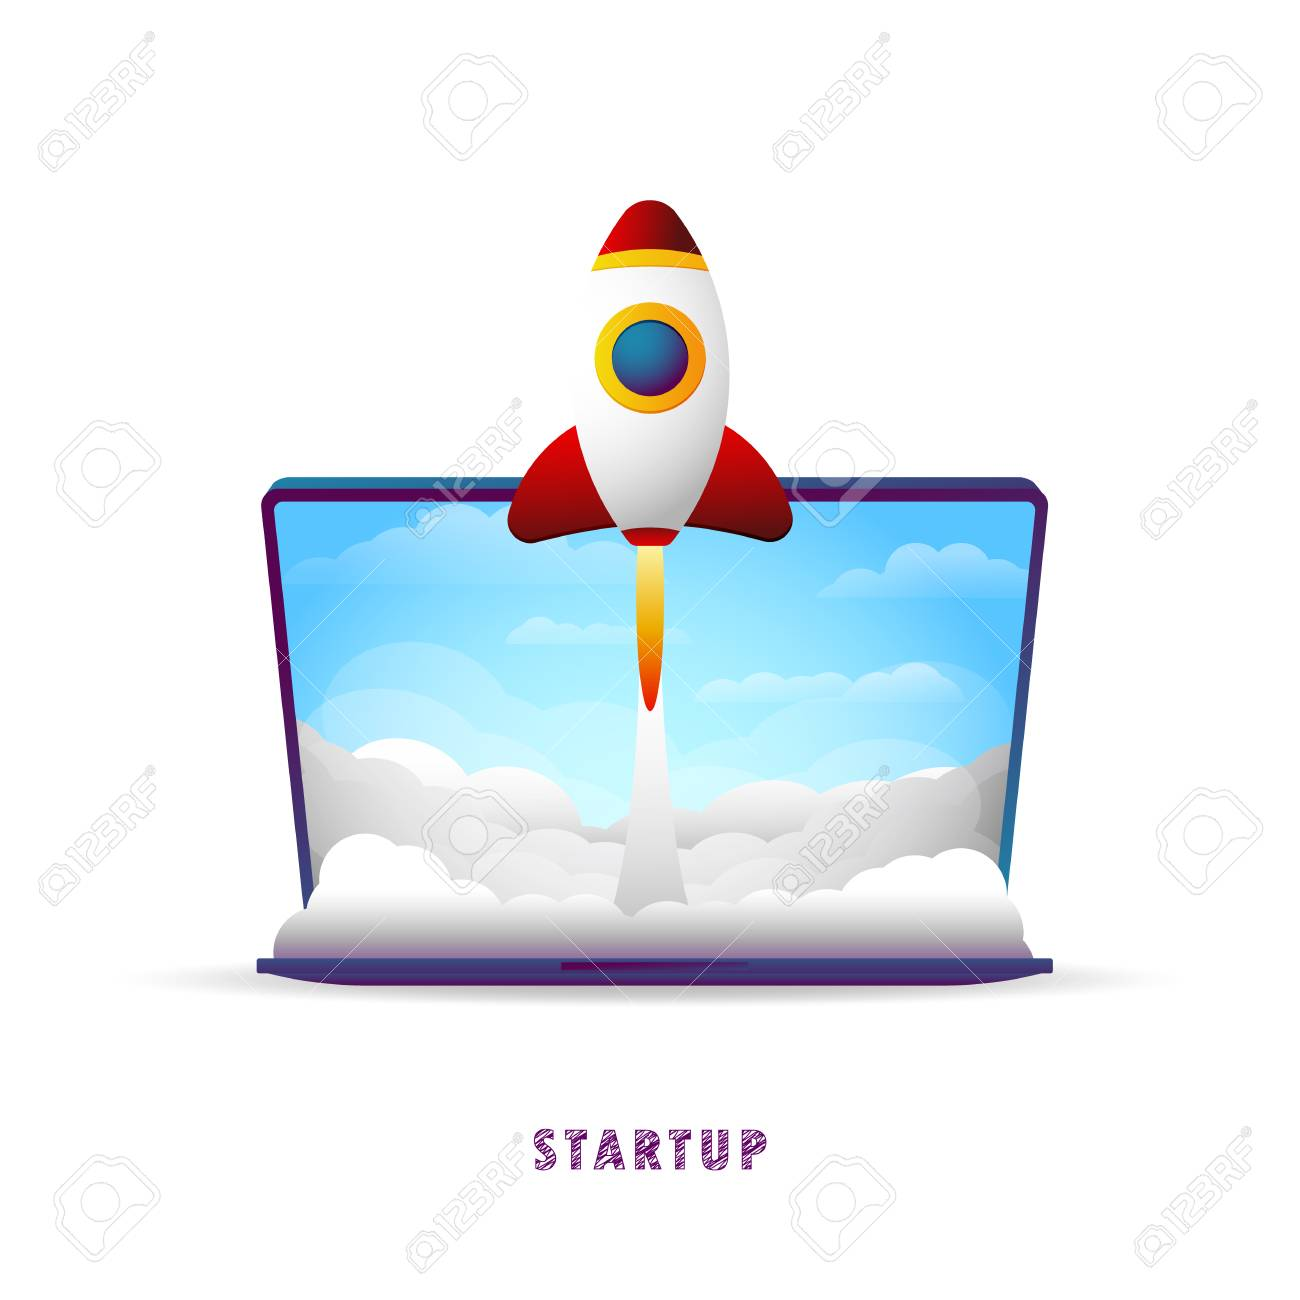 Startup. The rocket takes off from the laptop. Vector illustration. Flat. Slope. Transparent background - 104062232